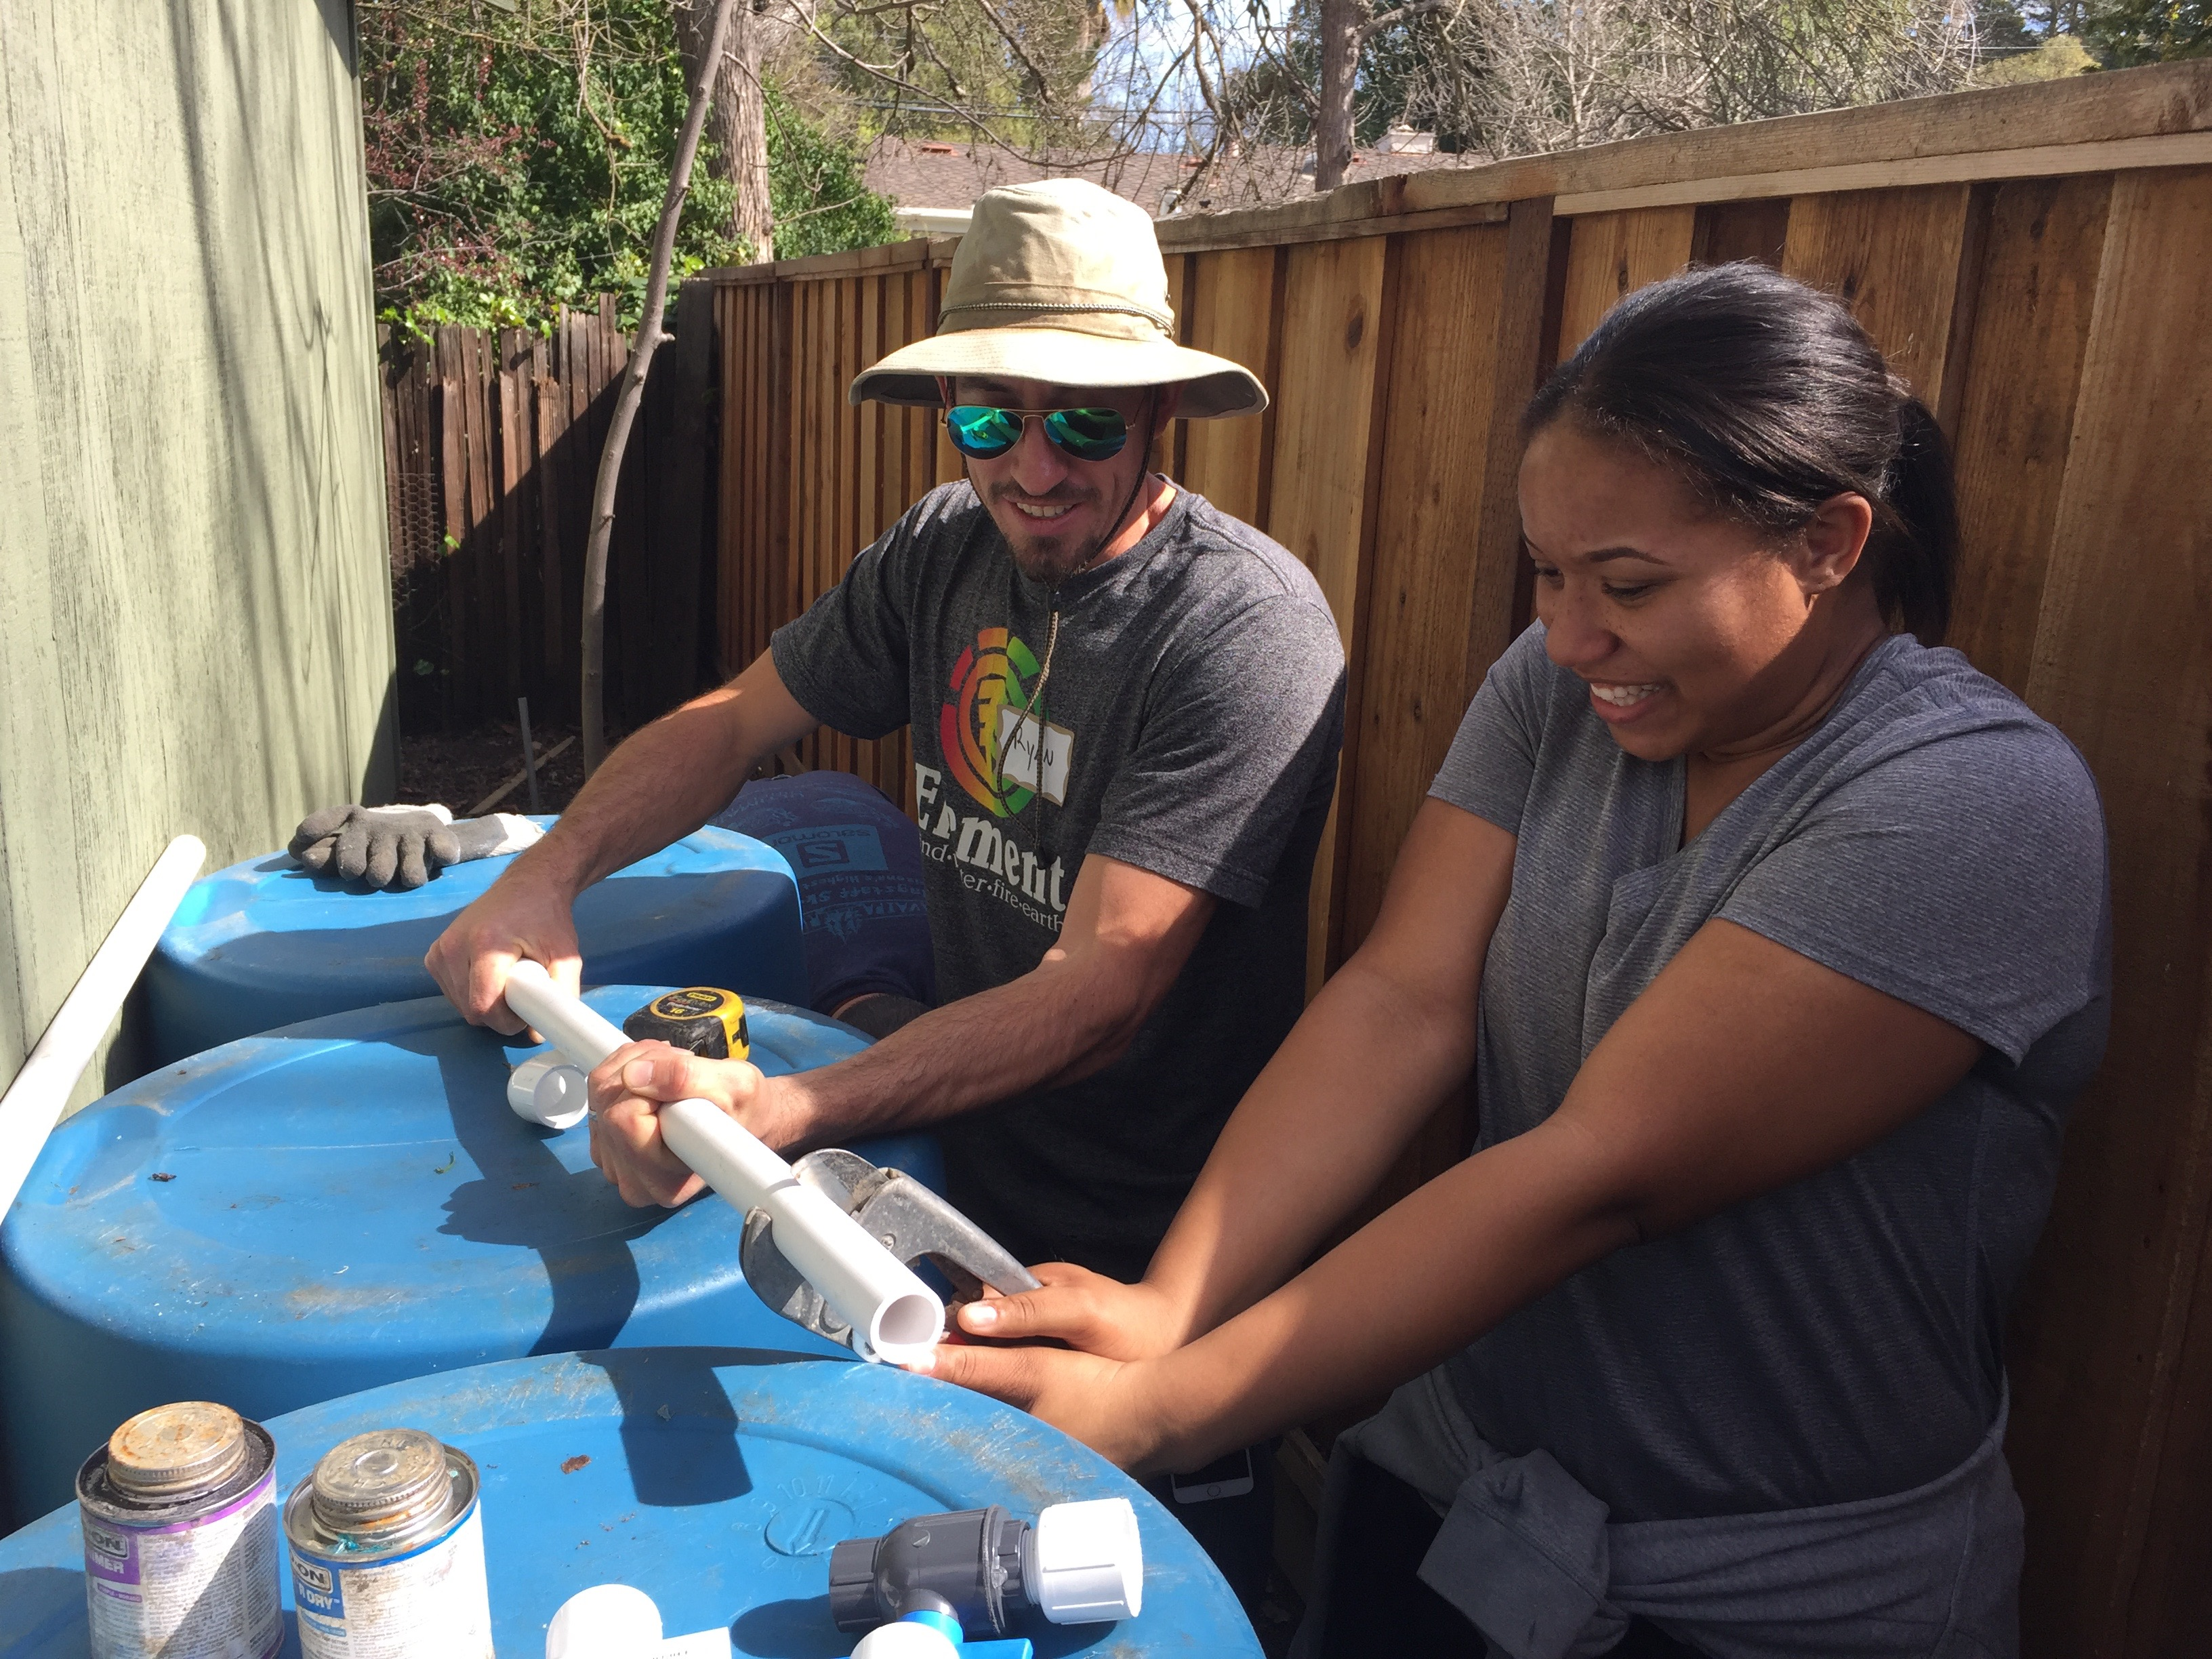 Landscape designer Ryan Kelsey shows Zakeisha Plummer how to cut PVC piping for a backyard rainwater capture system in Walnut Creek.